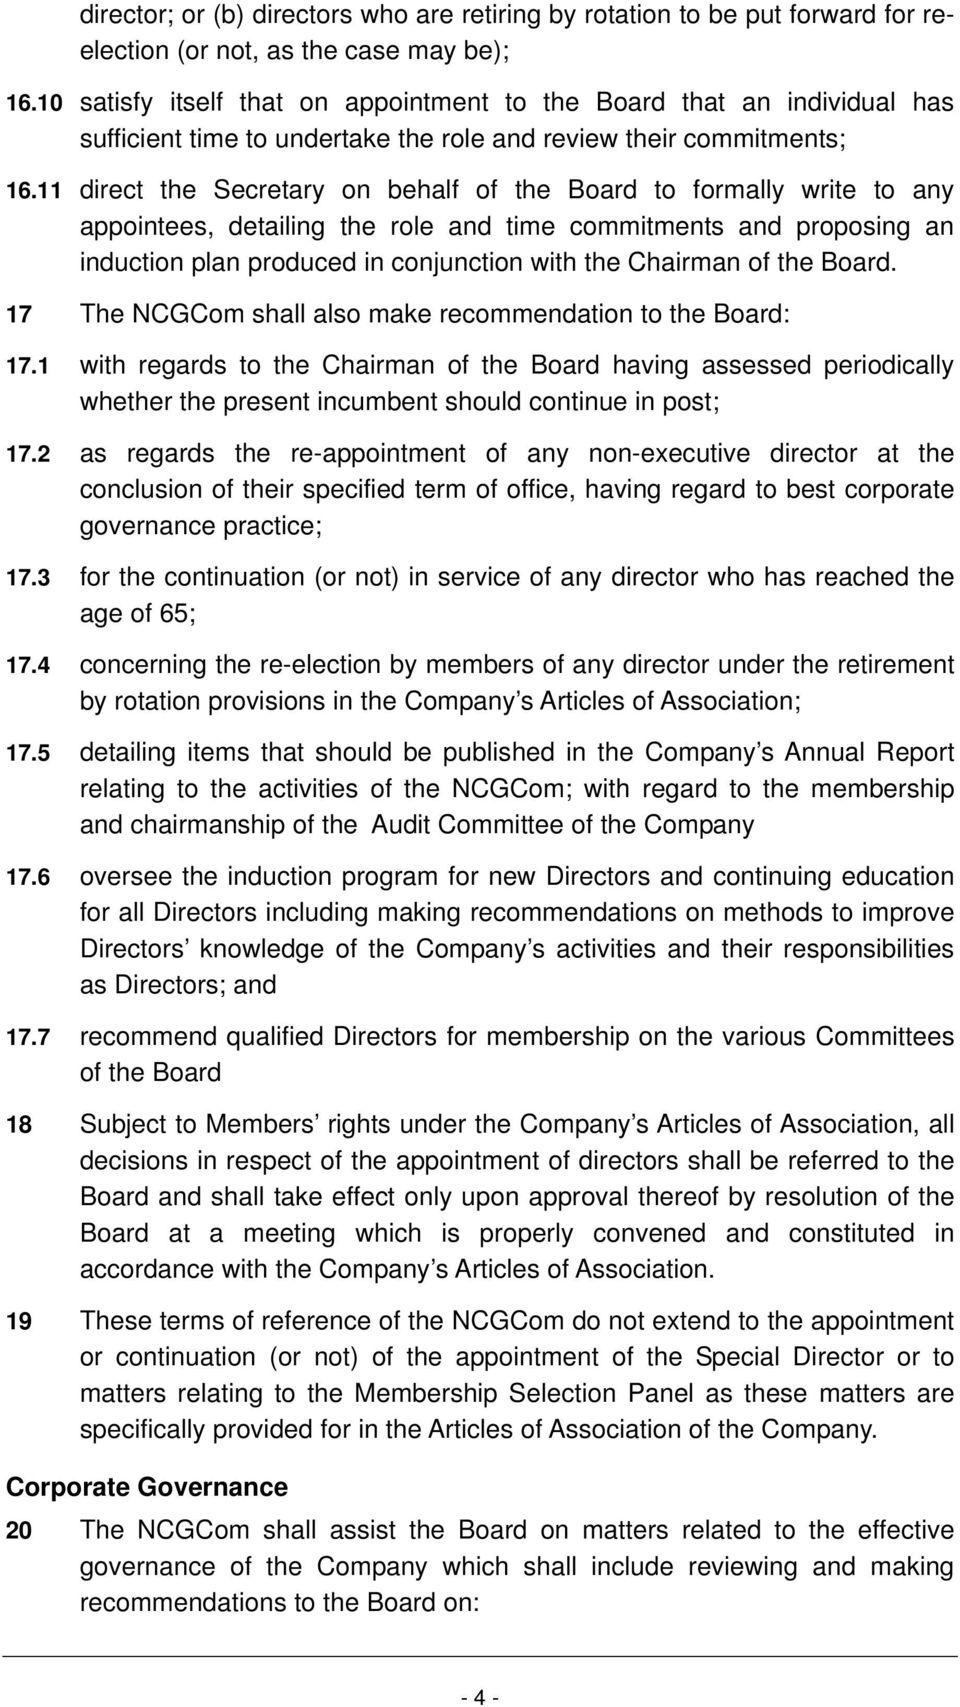 11 direct the Secretary on behalf of the Board to formally write to any appointees, detailing the role and time commitments and proposing an induction plan produced in conjunction with the Chairman